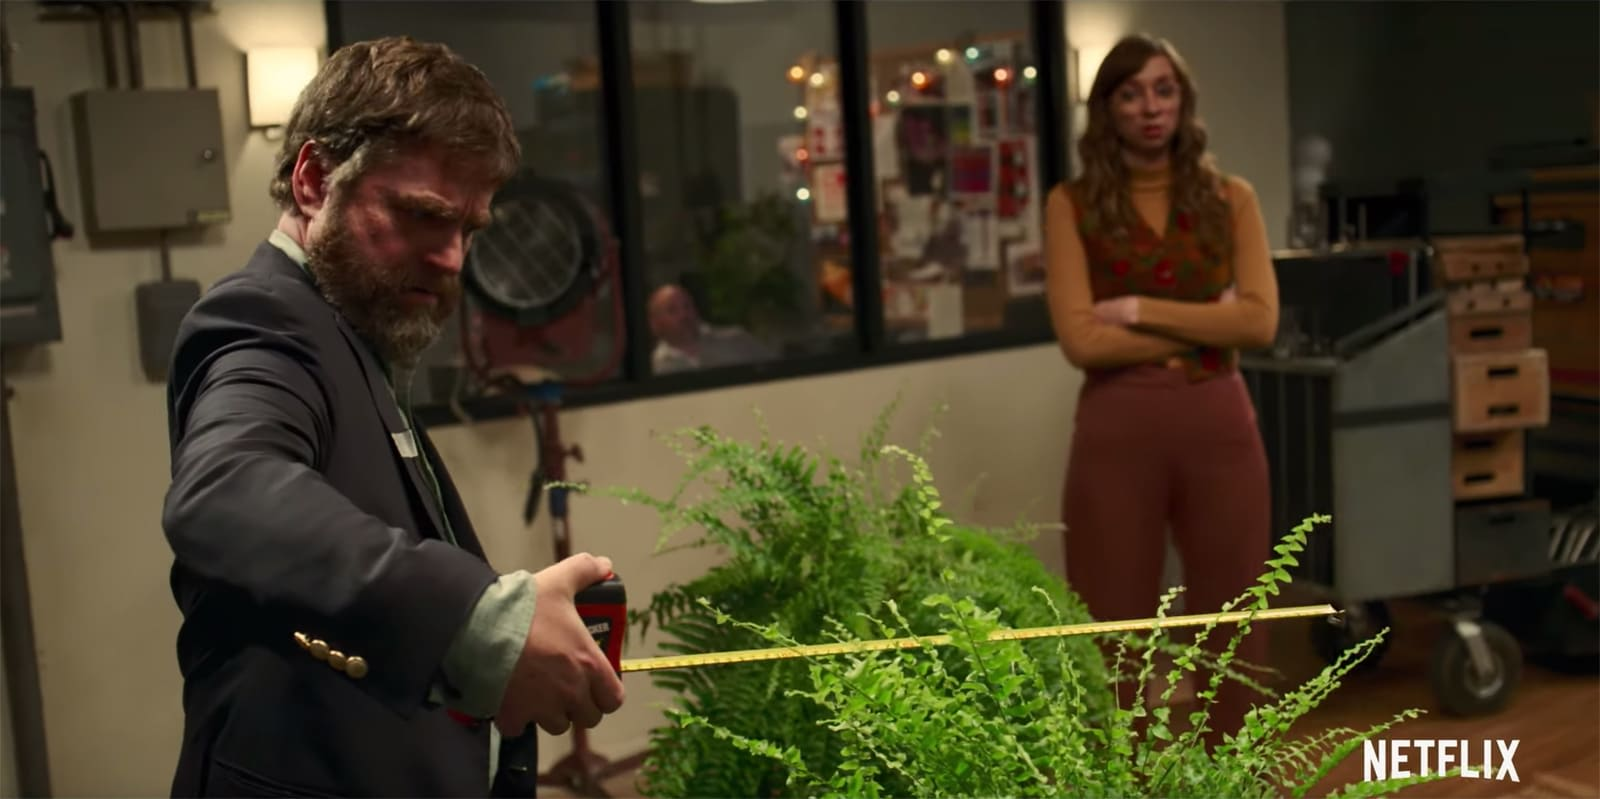 Netflix's 'Between Two Ferns' trailer looks as ridiculous as you'd expect